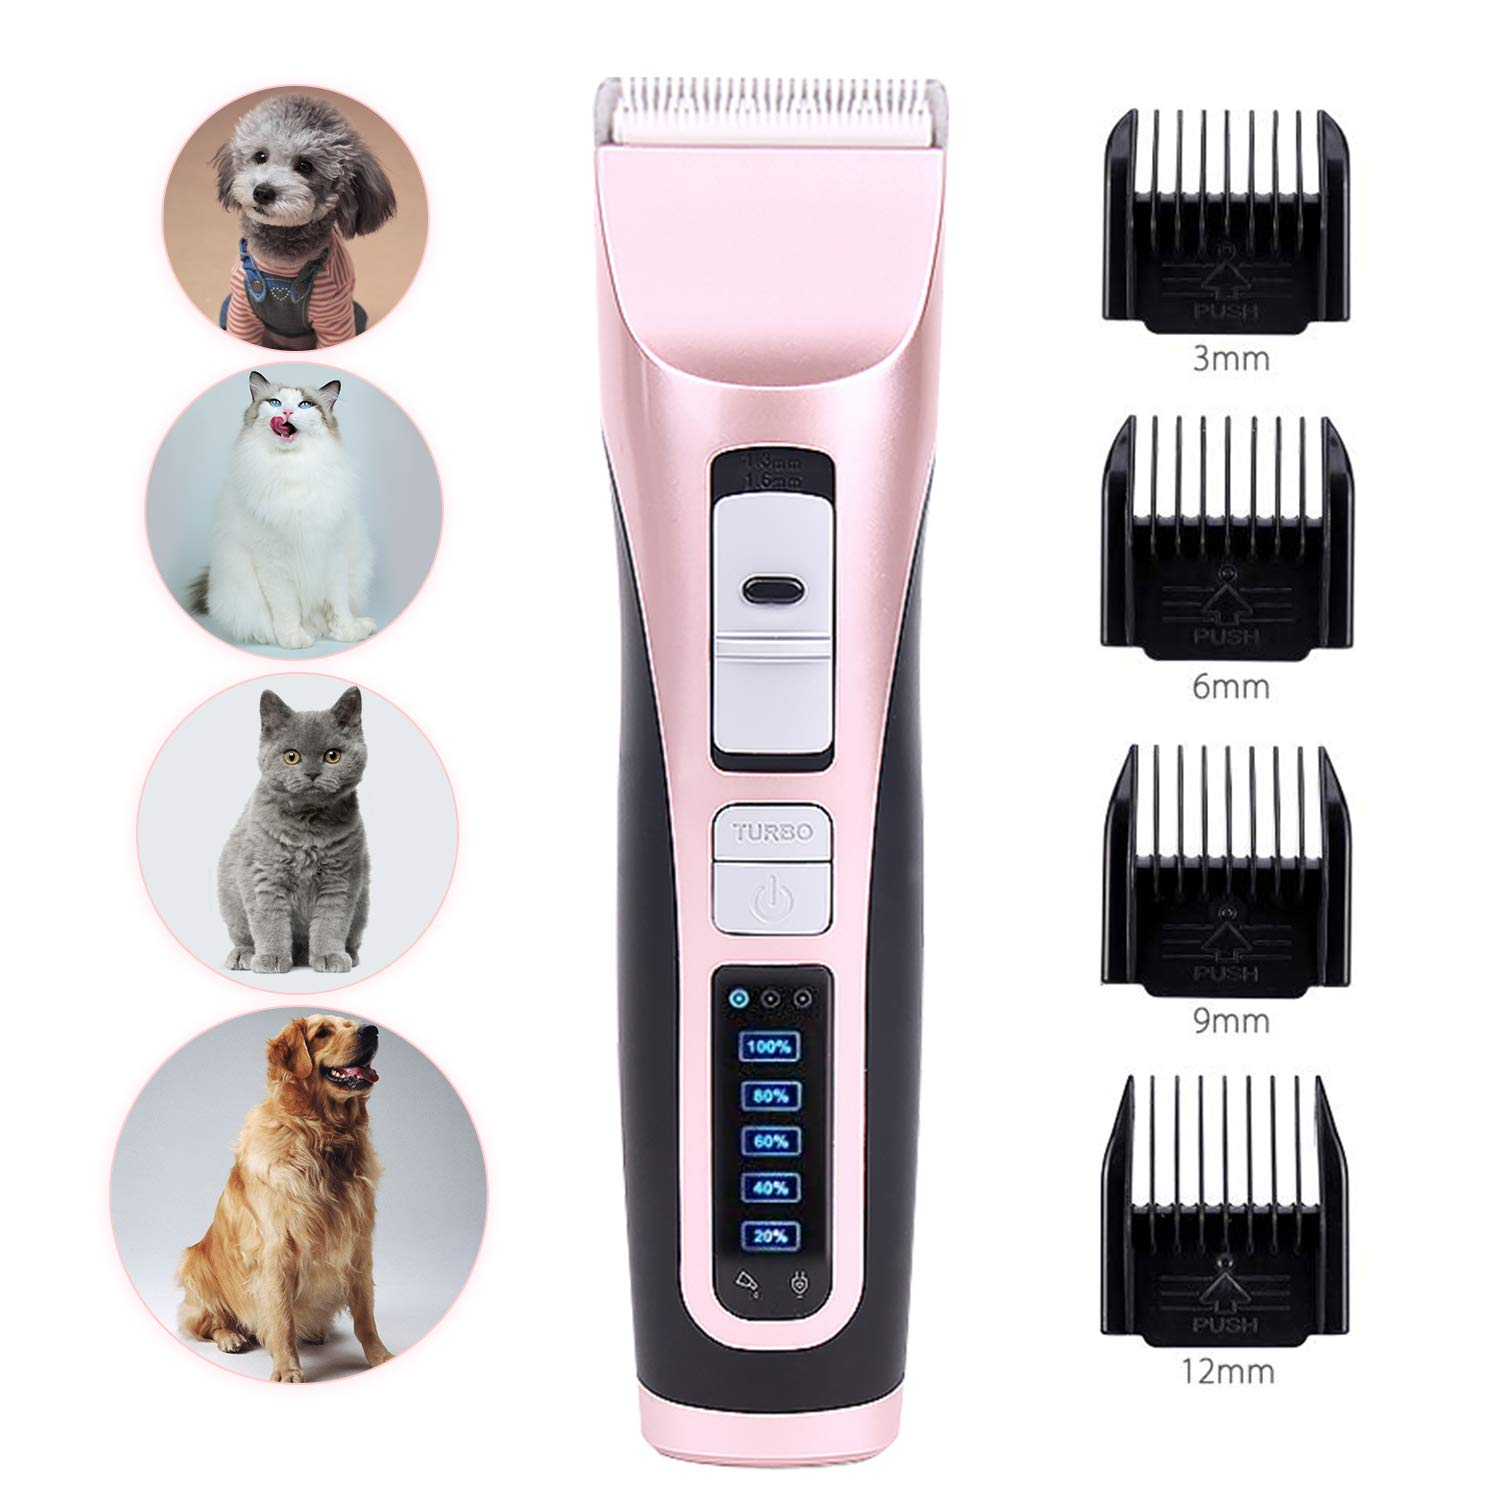 AlfaView Dog Clippers Professional Cordless Pet Hair Grooming Kit 3-Speed&4-Length Adjustment 5 Level Electricity LCD Display Rechargeable Shaver Clippers for Small Medium Large Dogs Cats Pets